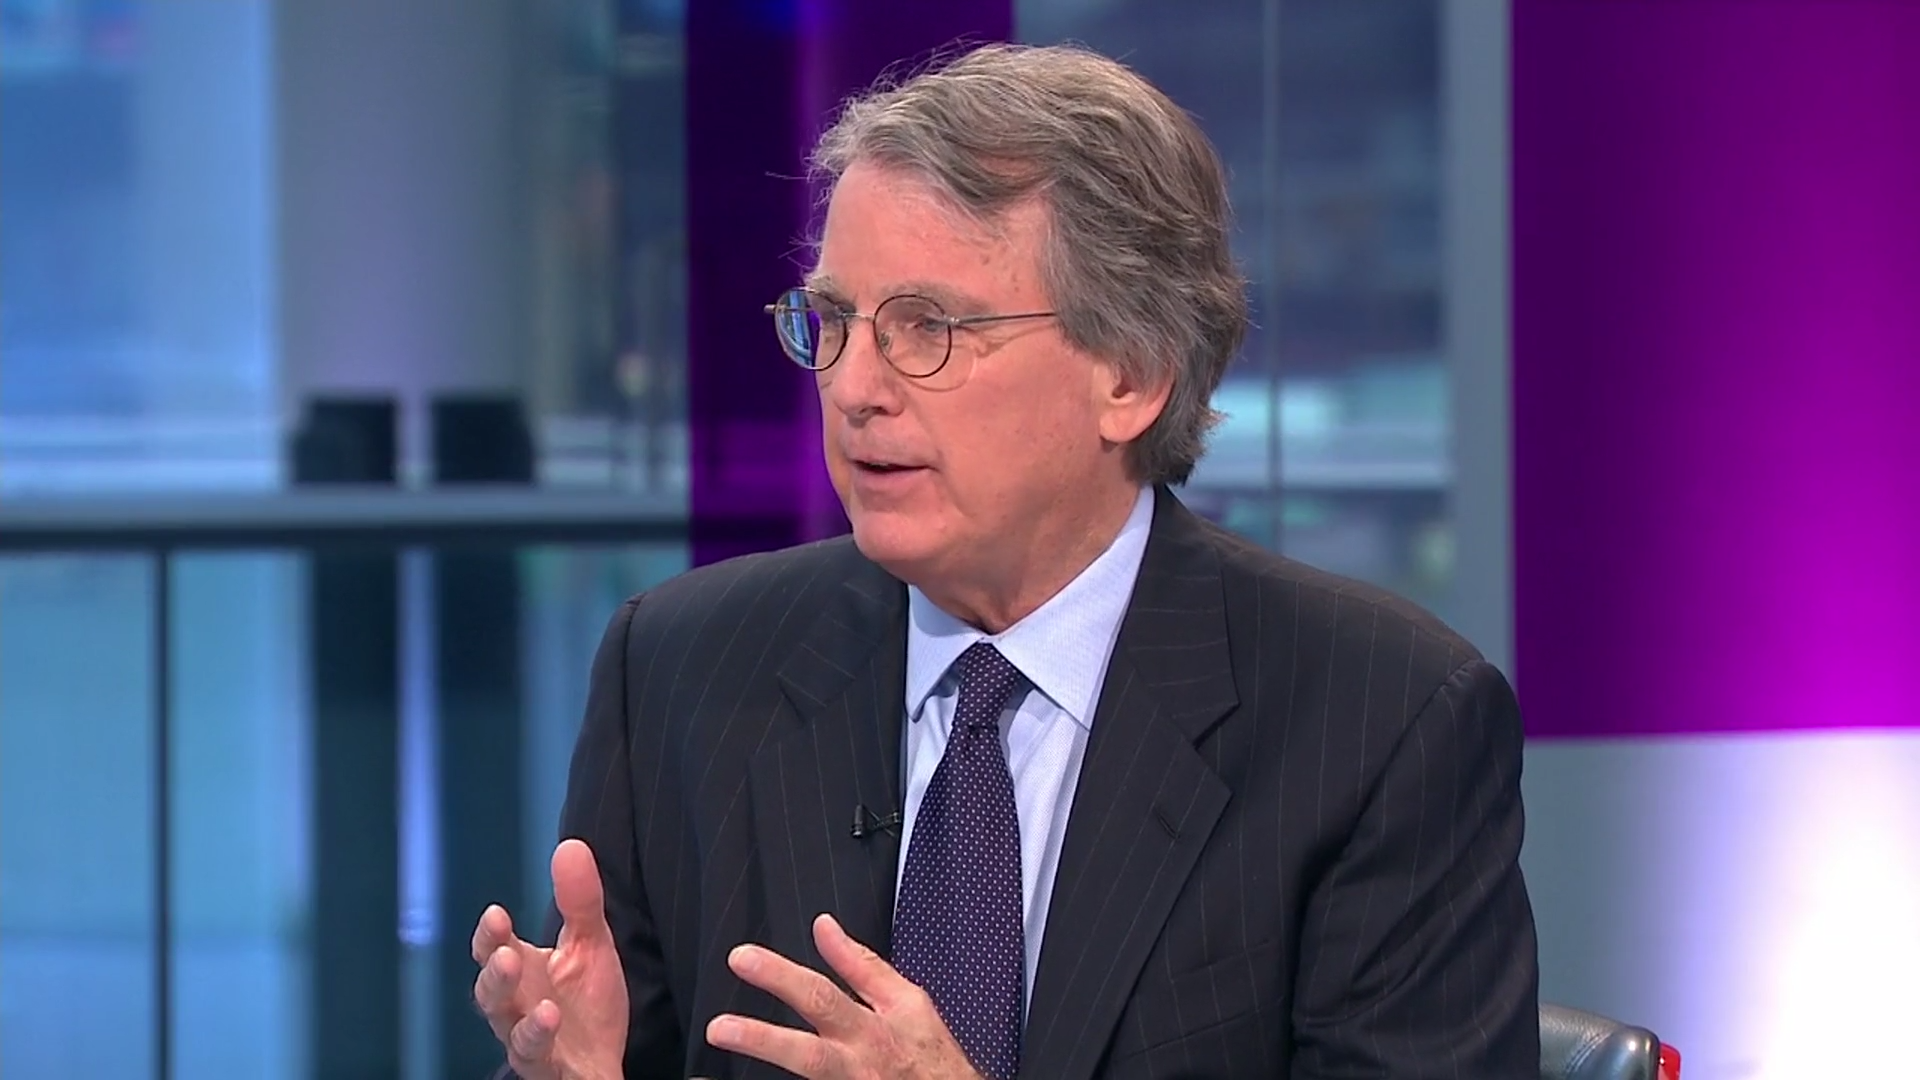 Roger McNamee: Facebook's 'business model of converting people's lives into data is morally wrong'